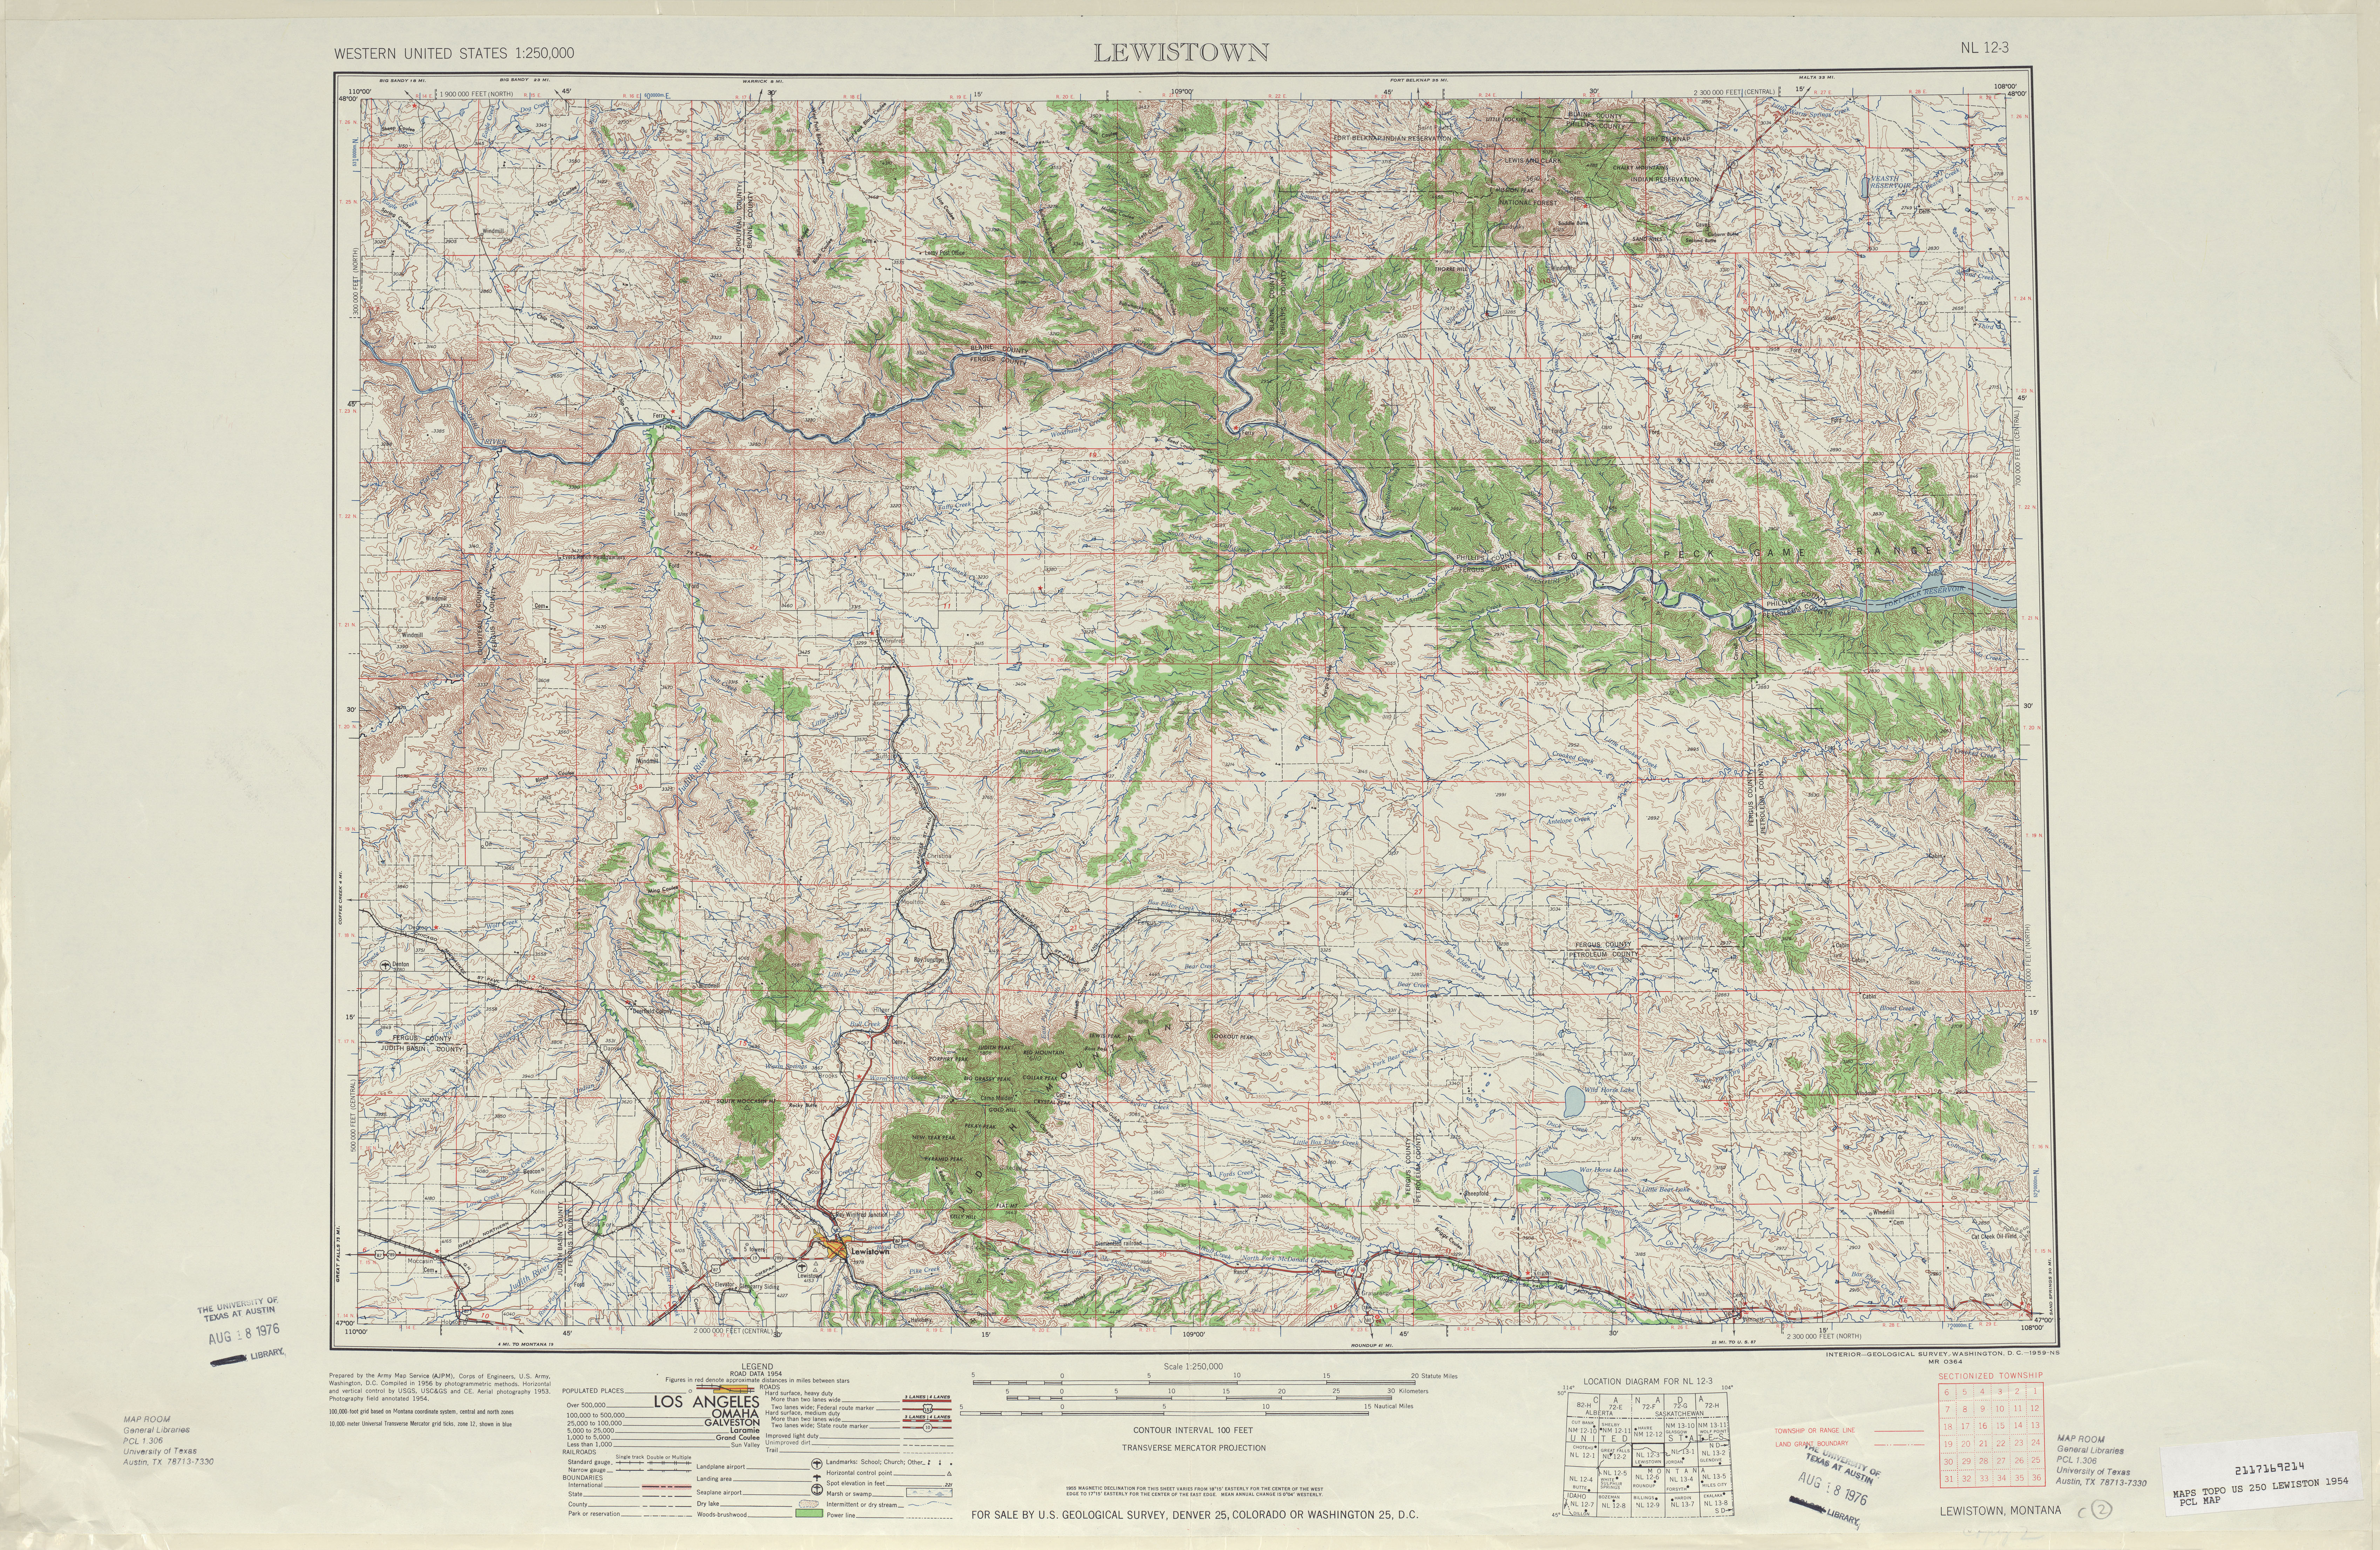 Lewiston Topographic Map Sheet, United States 1954